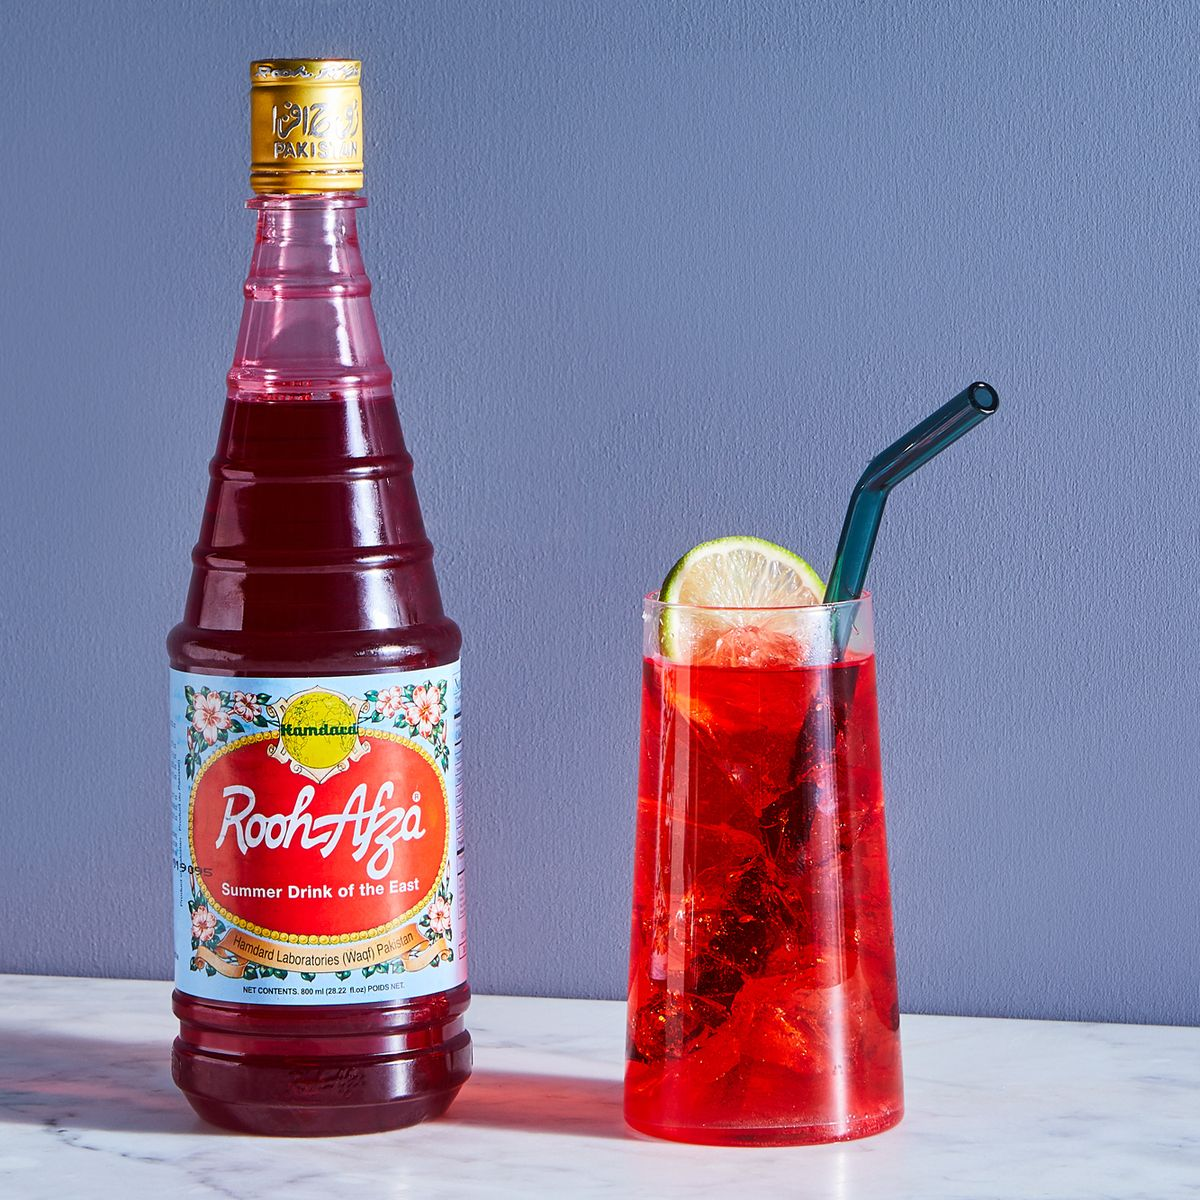 Is This the Most Refreshing Drink in the World?